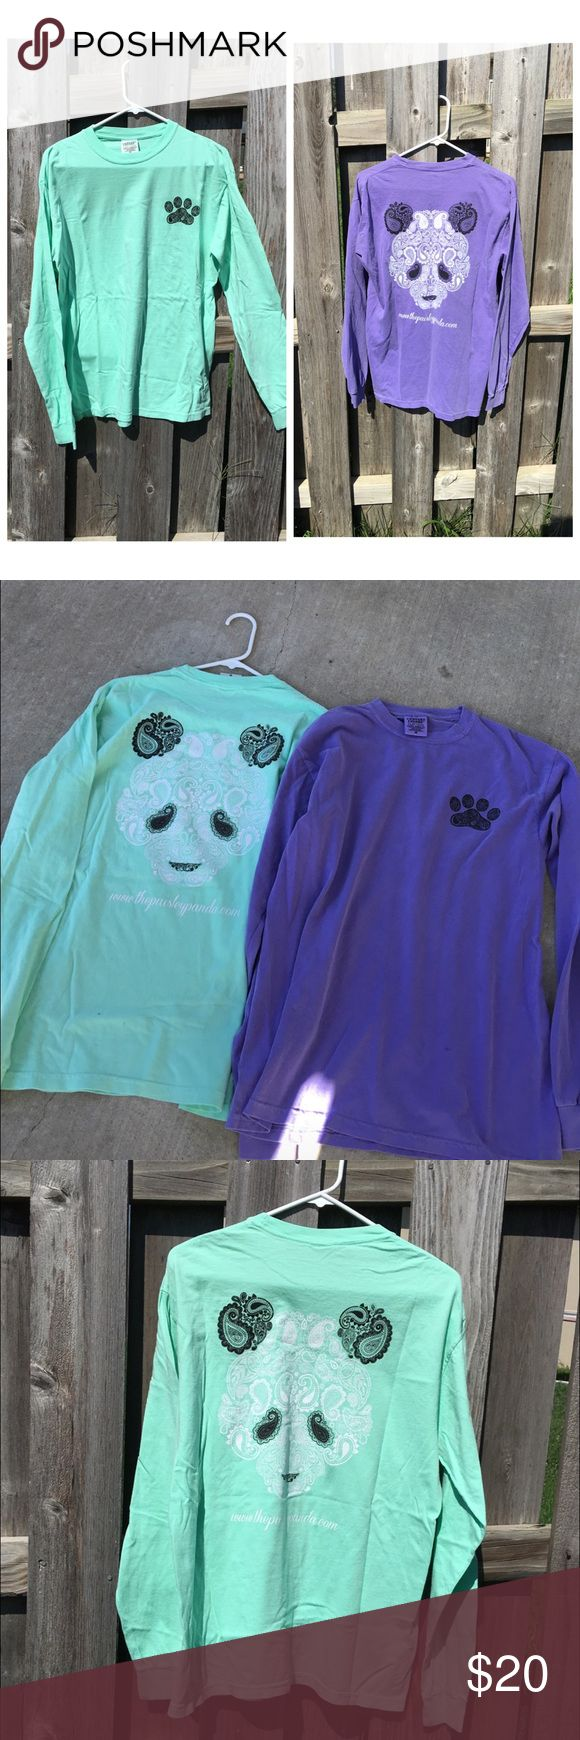 1 LEFT! New paisley panda long sleeve shirts Sea foam green and purple, both are for sale in various sizes. Paisley panda shirts are to support endangered pandas( similar to IVORY ELLA shirts) ❤️ they are both comfort colors shirts, ridiculously comfortable and cute  Paisley Panda Tops Tees - Long Sleeve